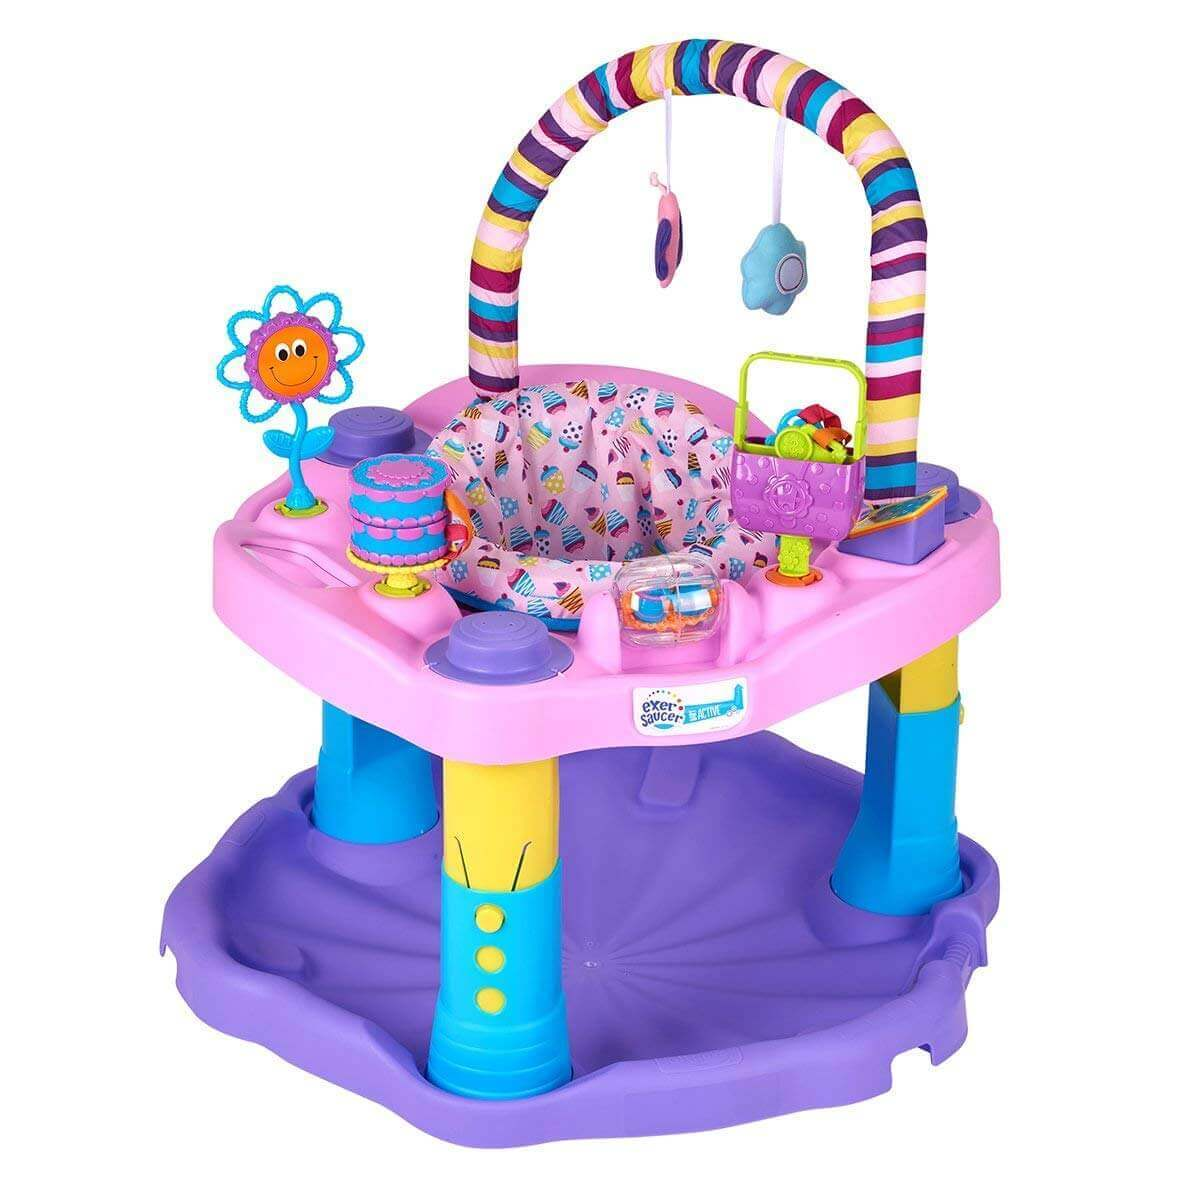 Image of a Evenflo Bounce And Learn baby jumper on white background.